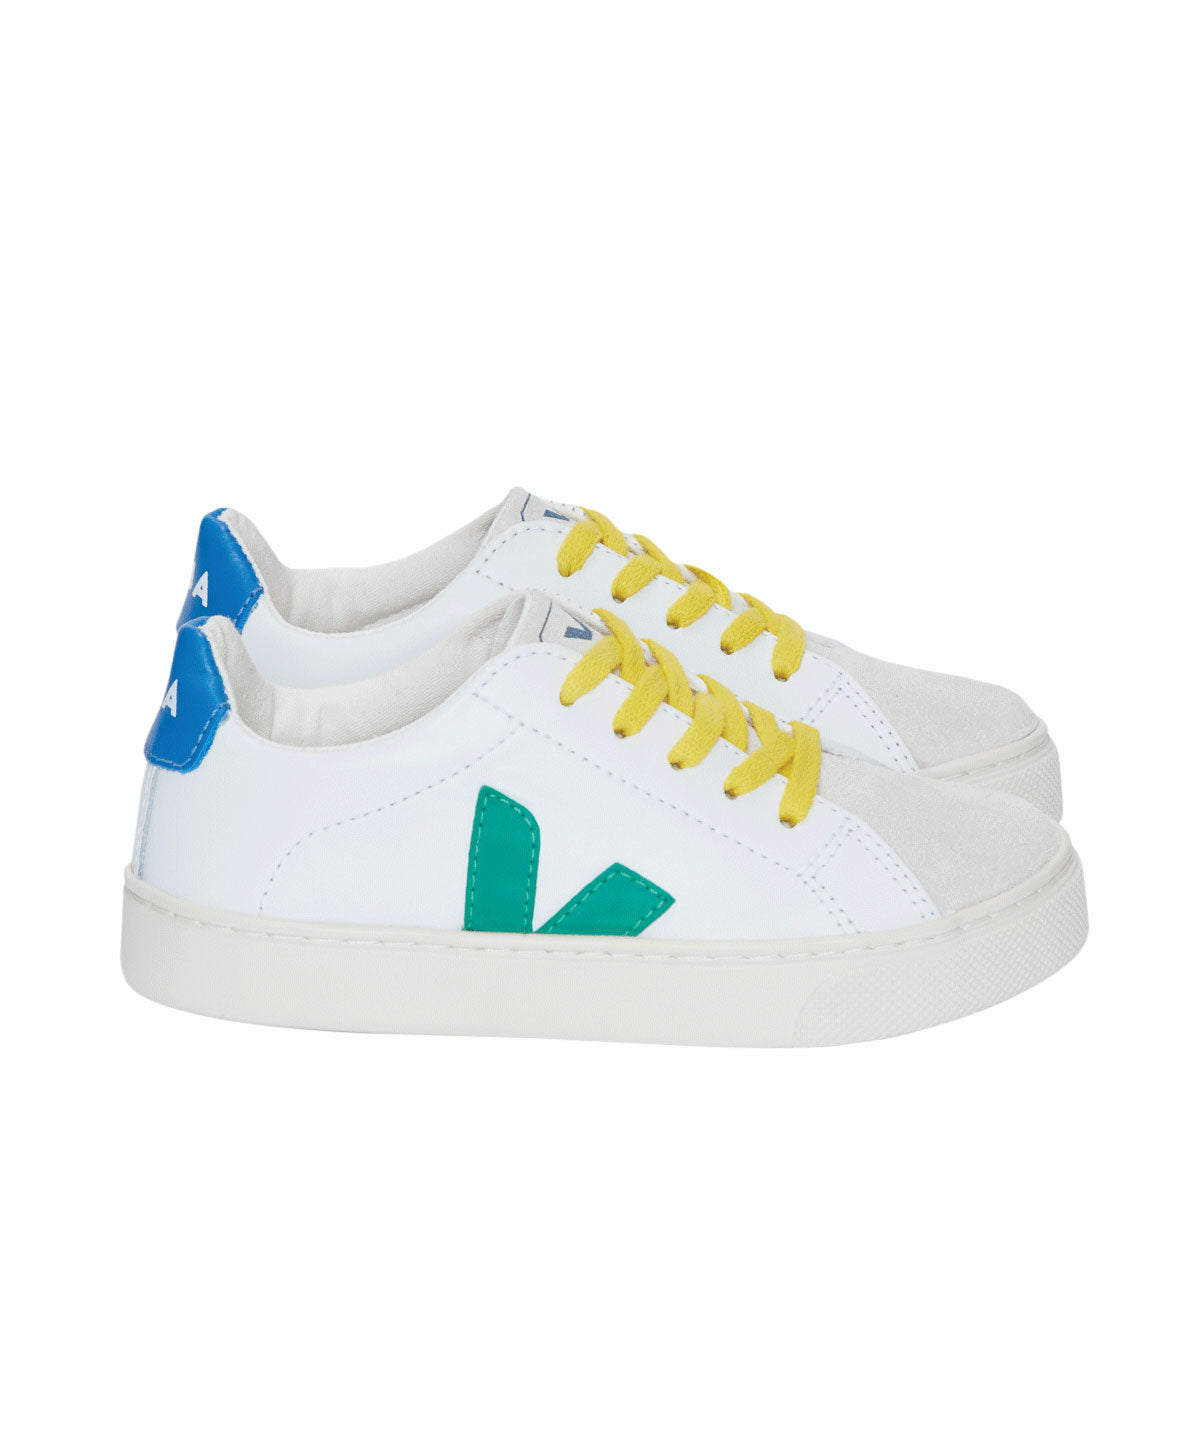 Esplar Yellow Lace-Up Sneakers